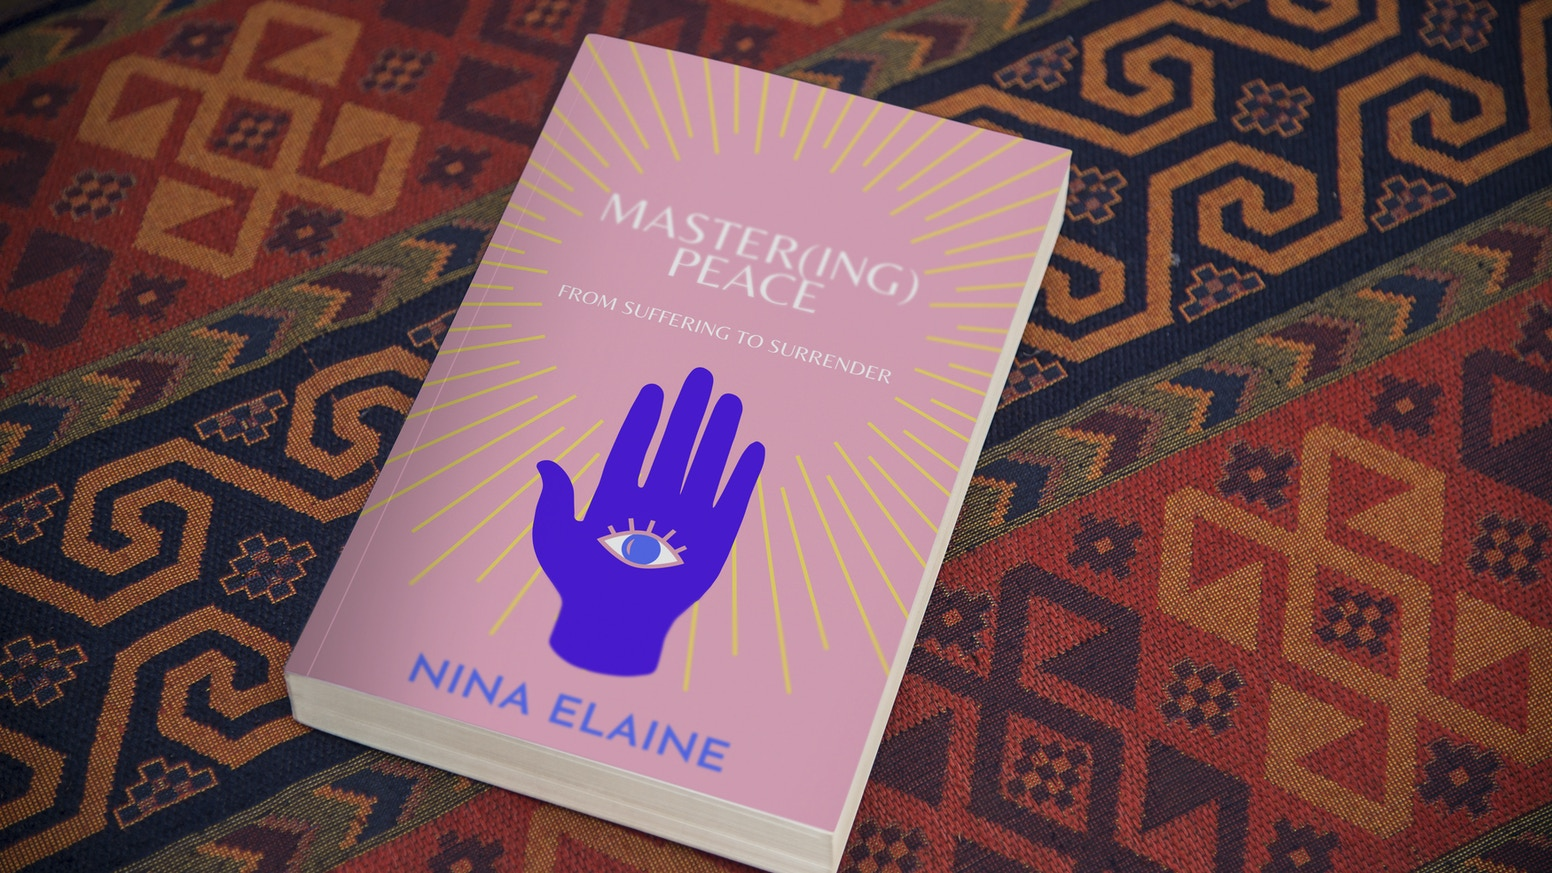 *SALE EXTENDED*Click the link below to pre-order your copy through 11/11! This book serves as a practical guide to healing through self mastery. Master(ing) Peace takes you on a journey of self exploration.